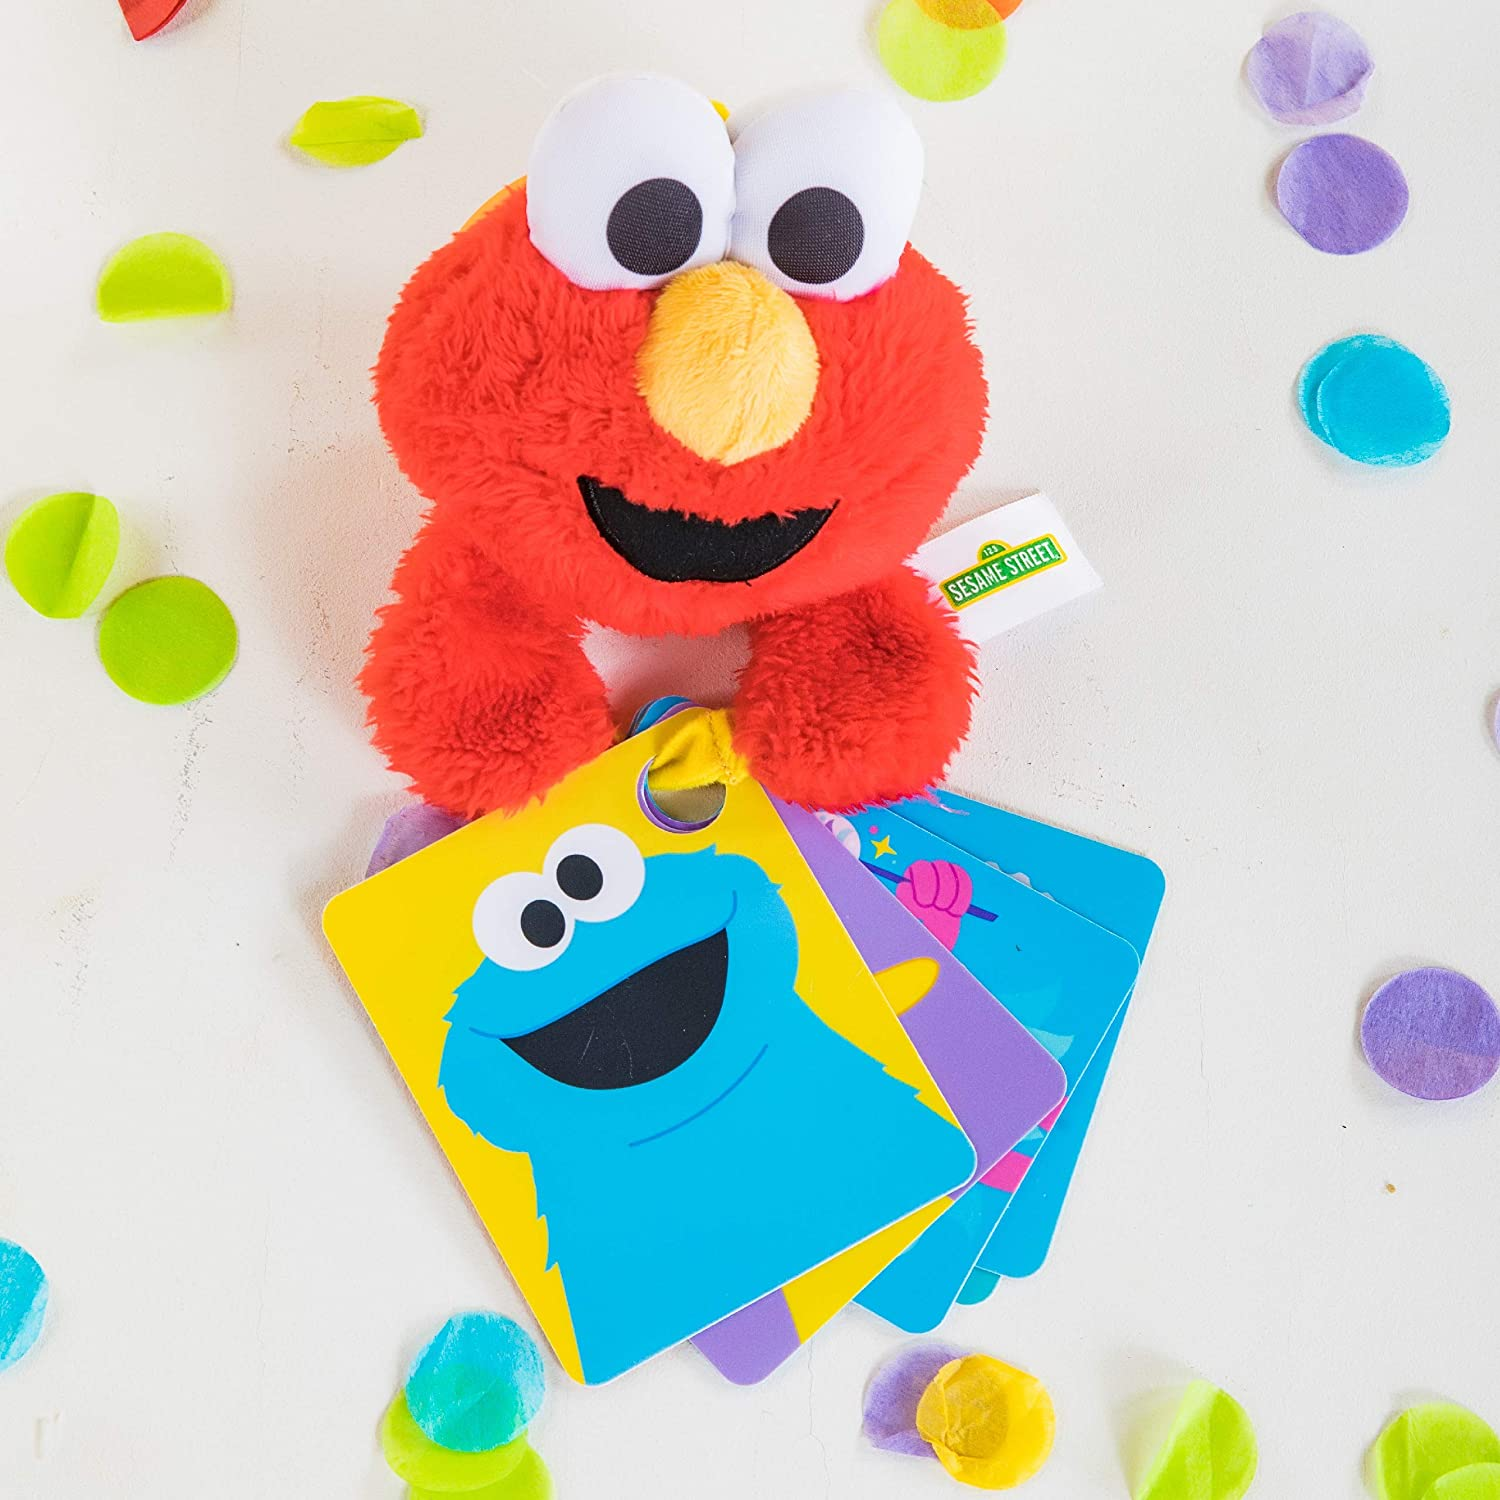 Bright Starts Sesame Street ABC Fun with Elmo On-The-Go Take-Along Toy Ages 0-12 Months